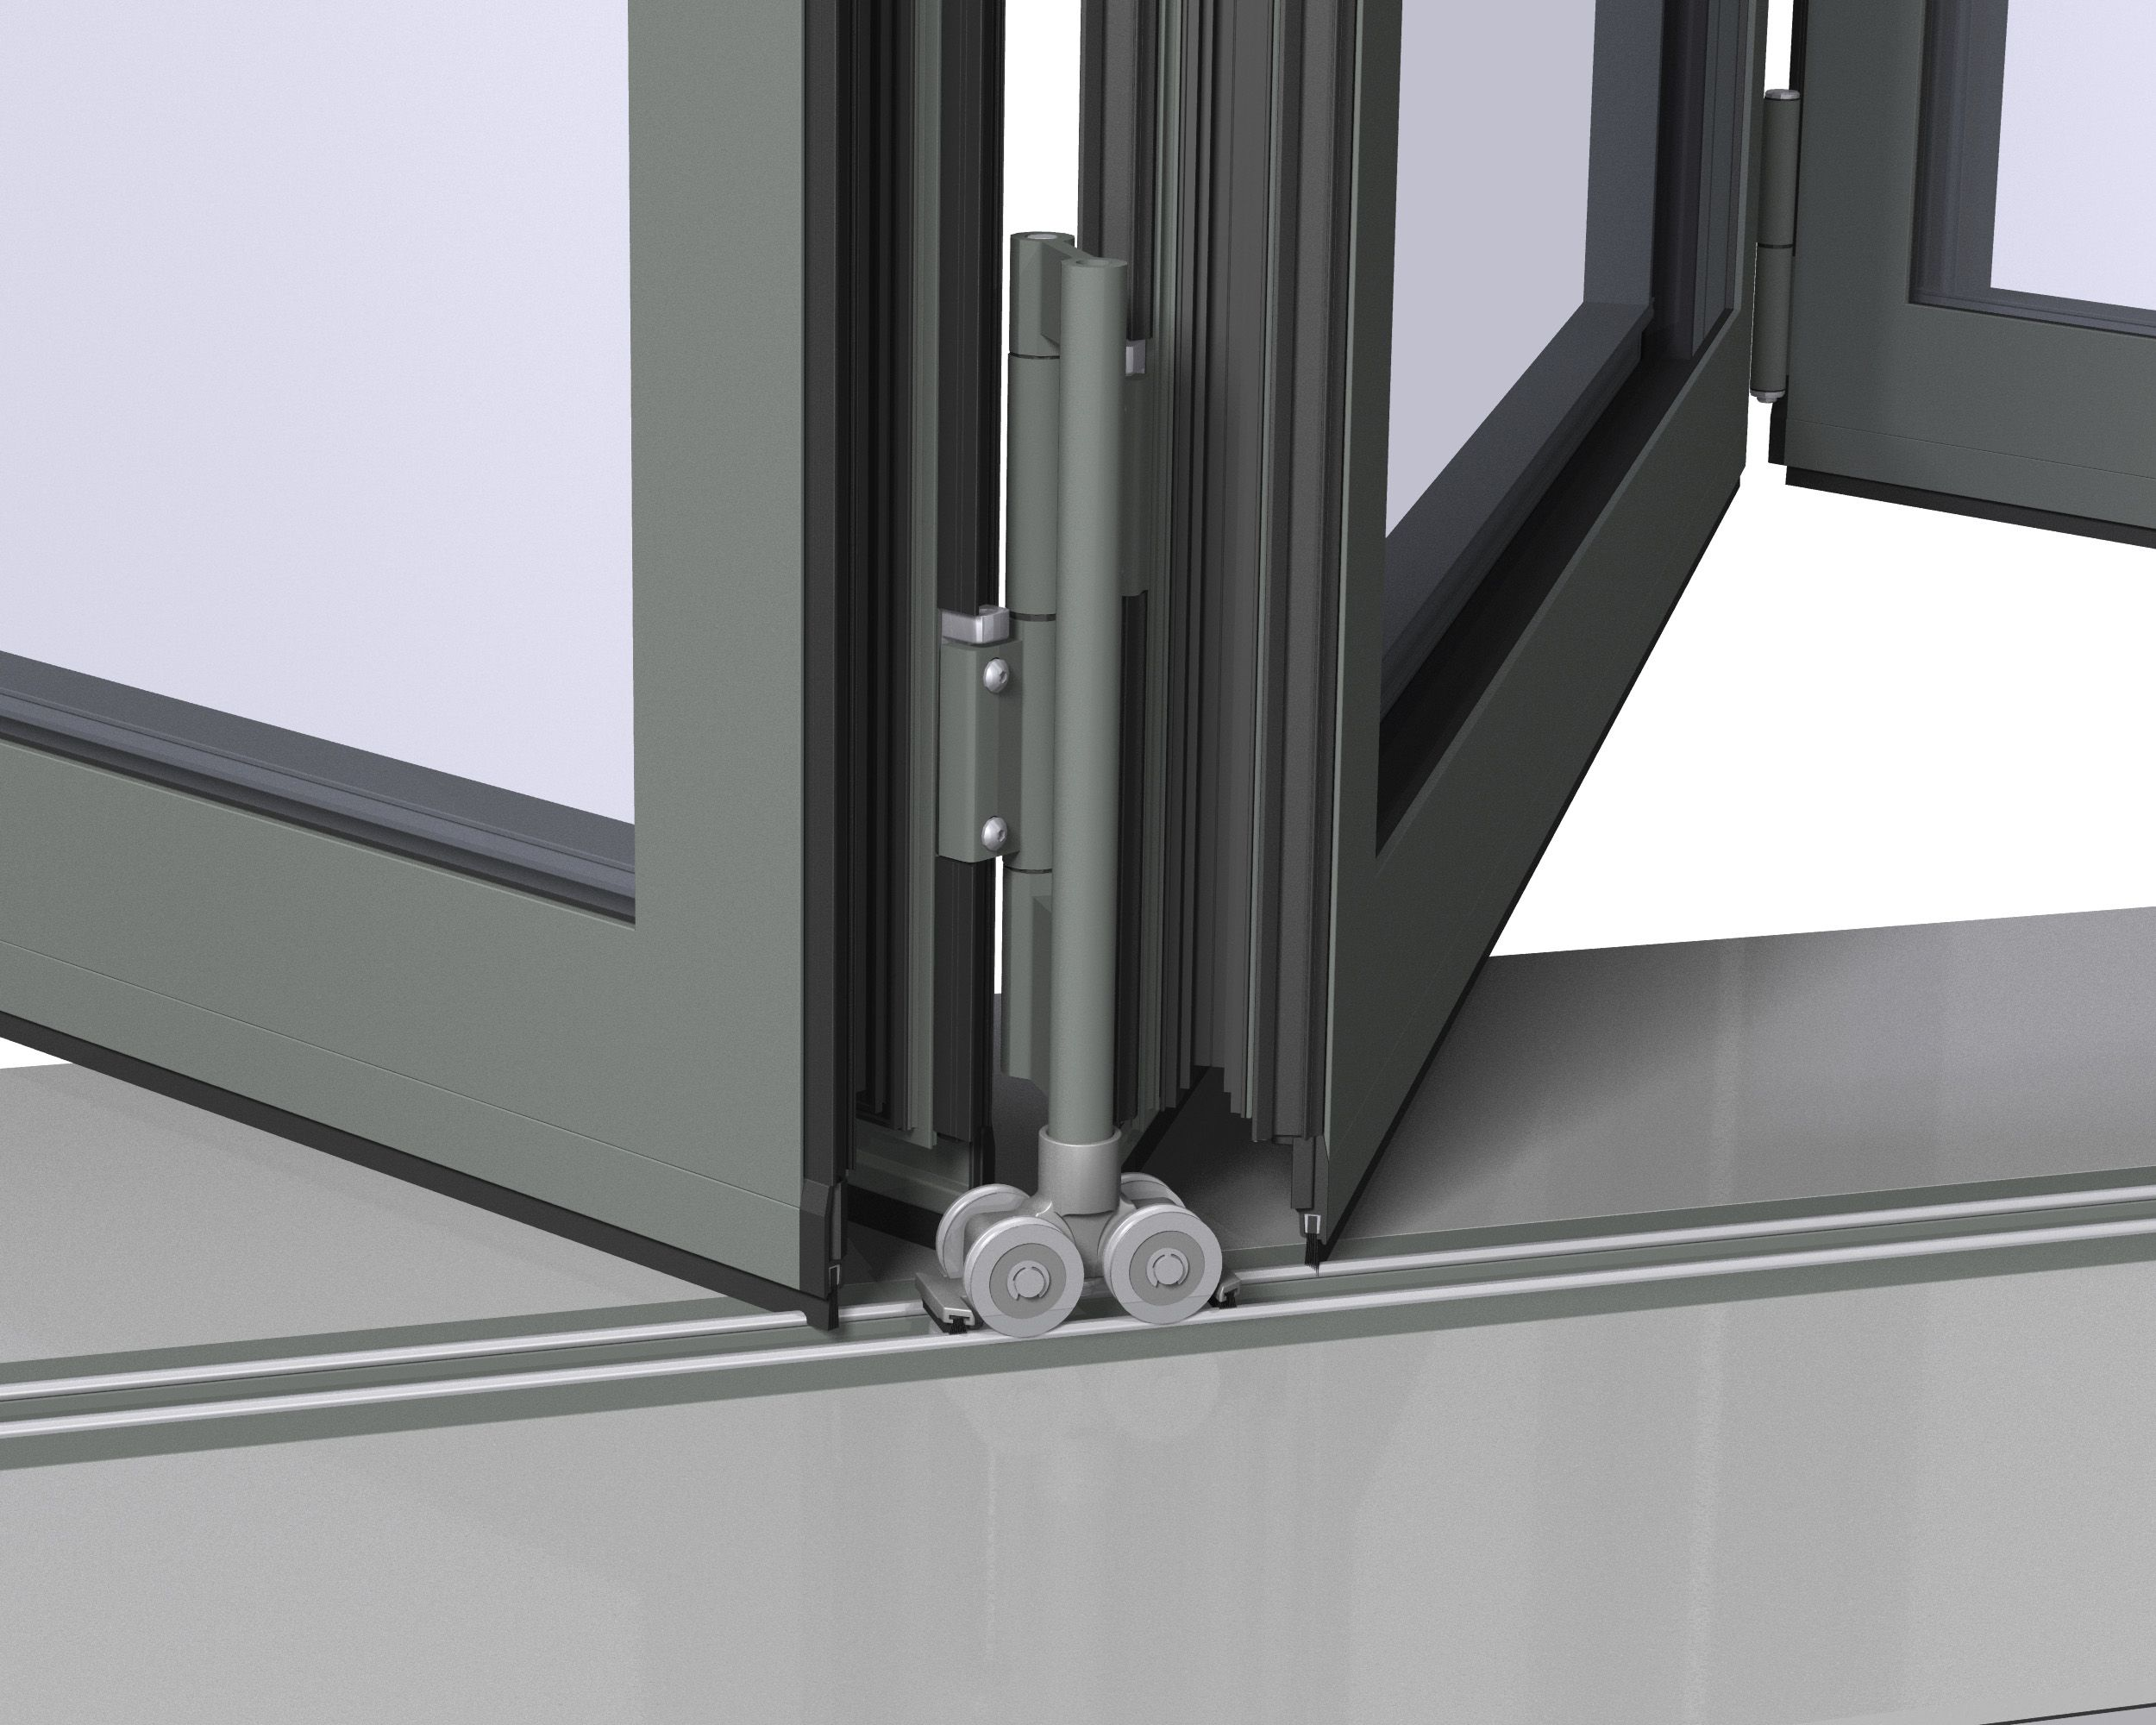 bi hardware door piece in com shop at reliabilt pass kits pl closet sliding tracks track lowes